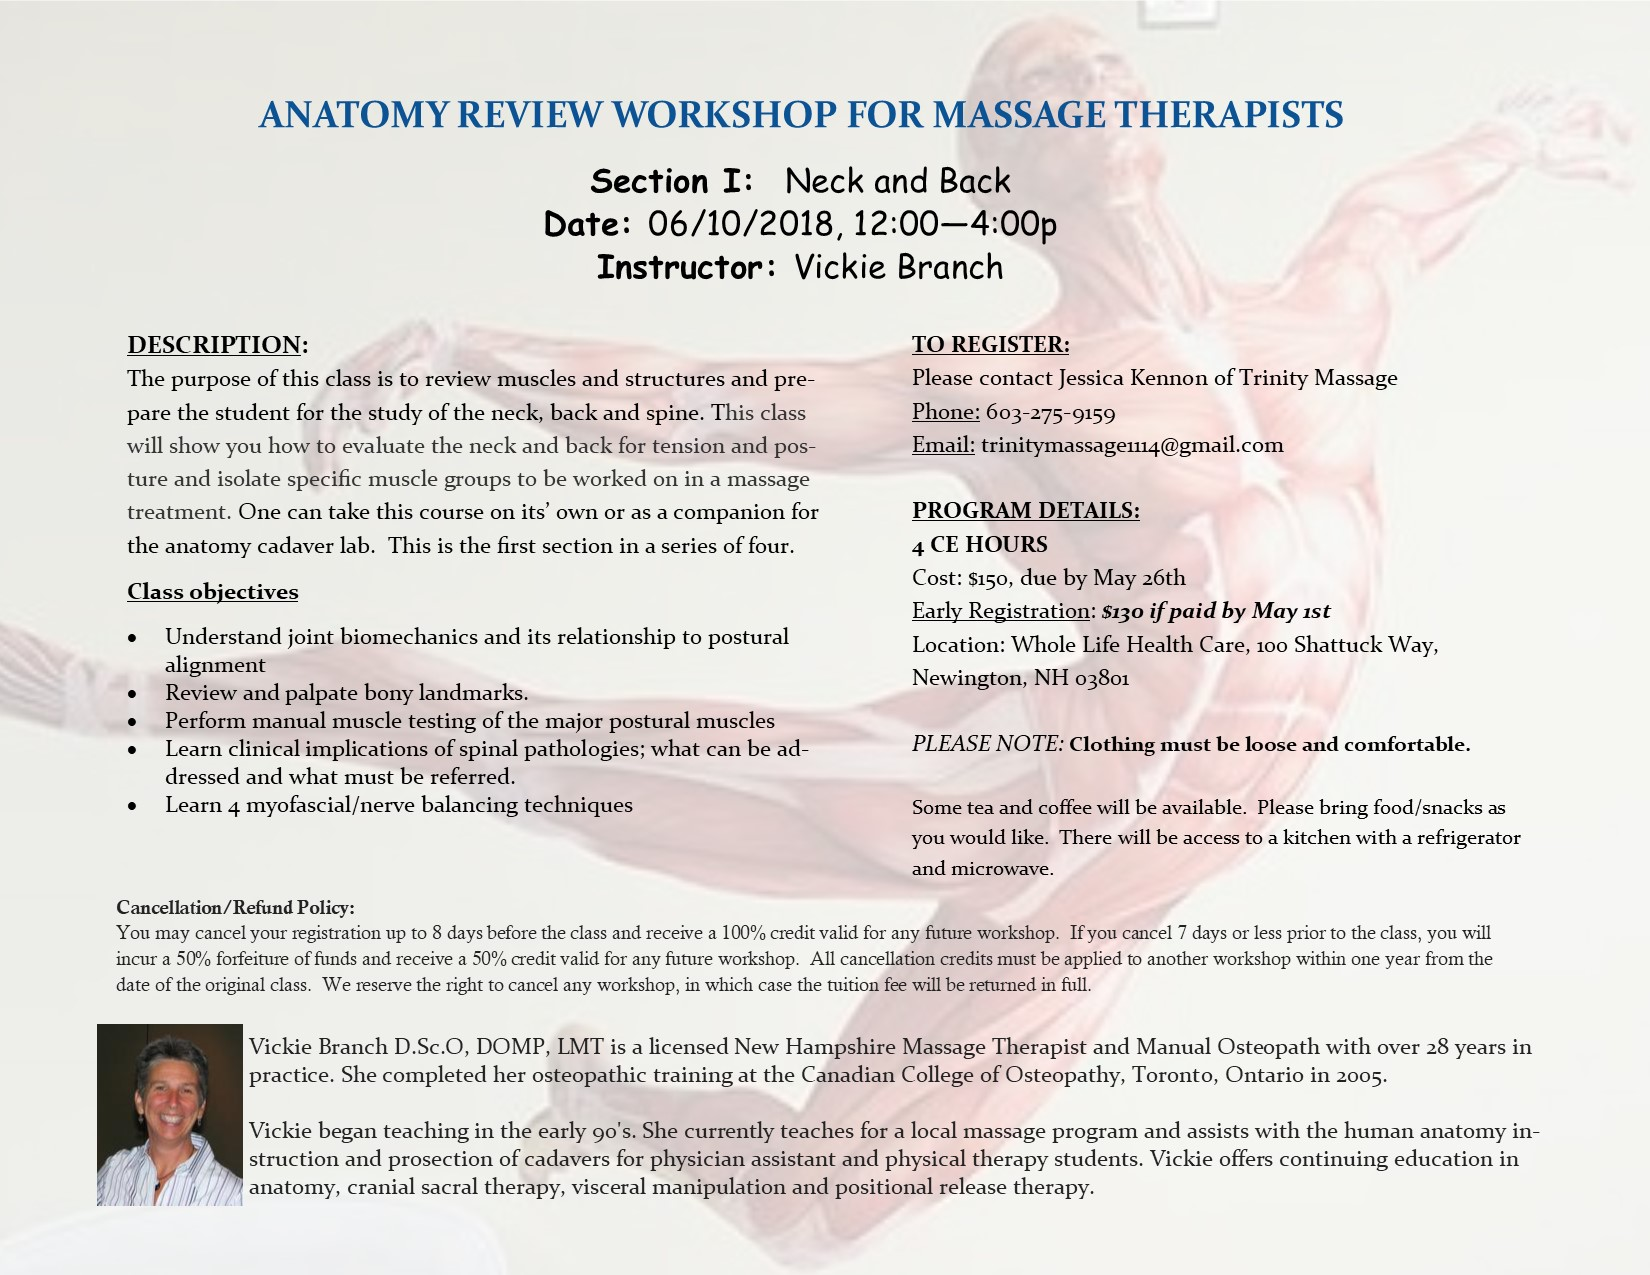 Anatomy Review Workshop for Massage Therapists June 10, 2018